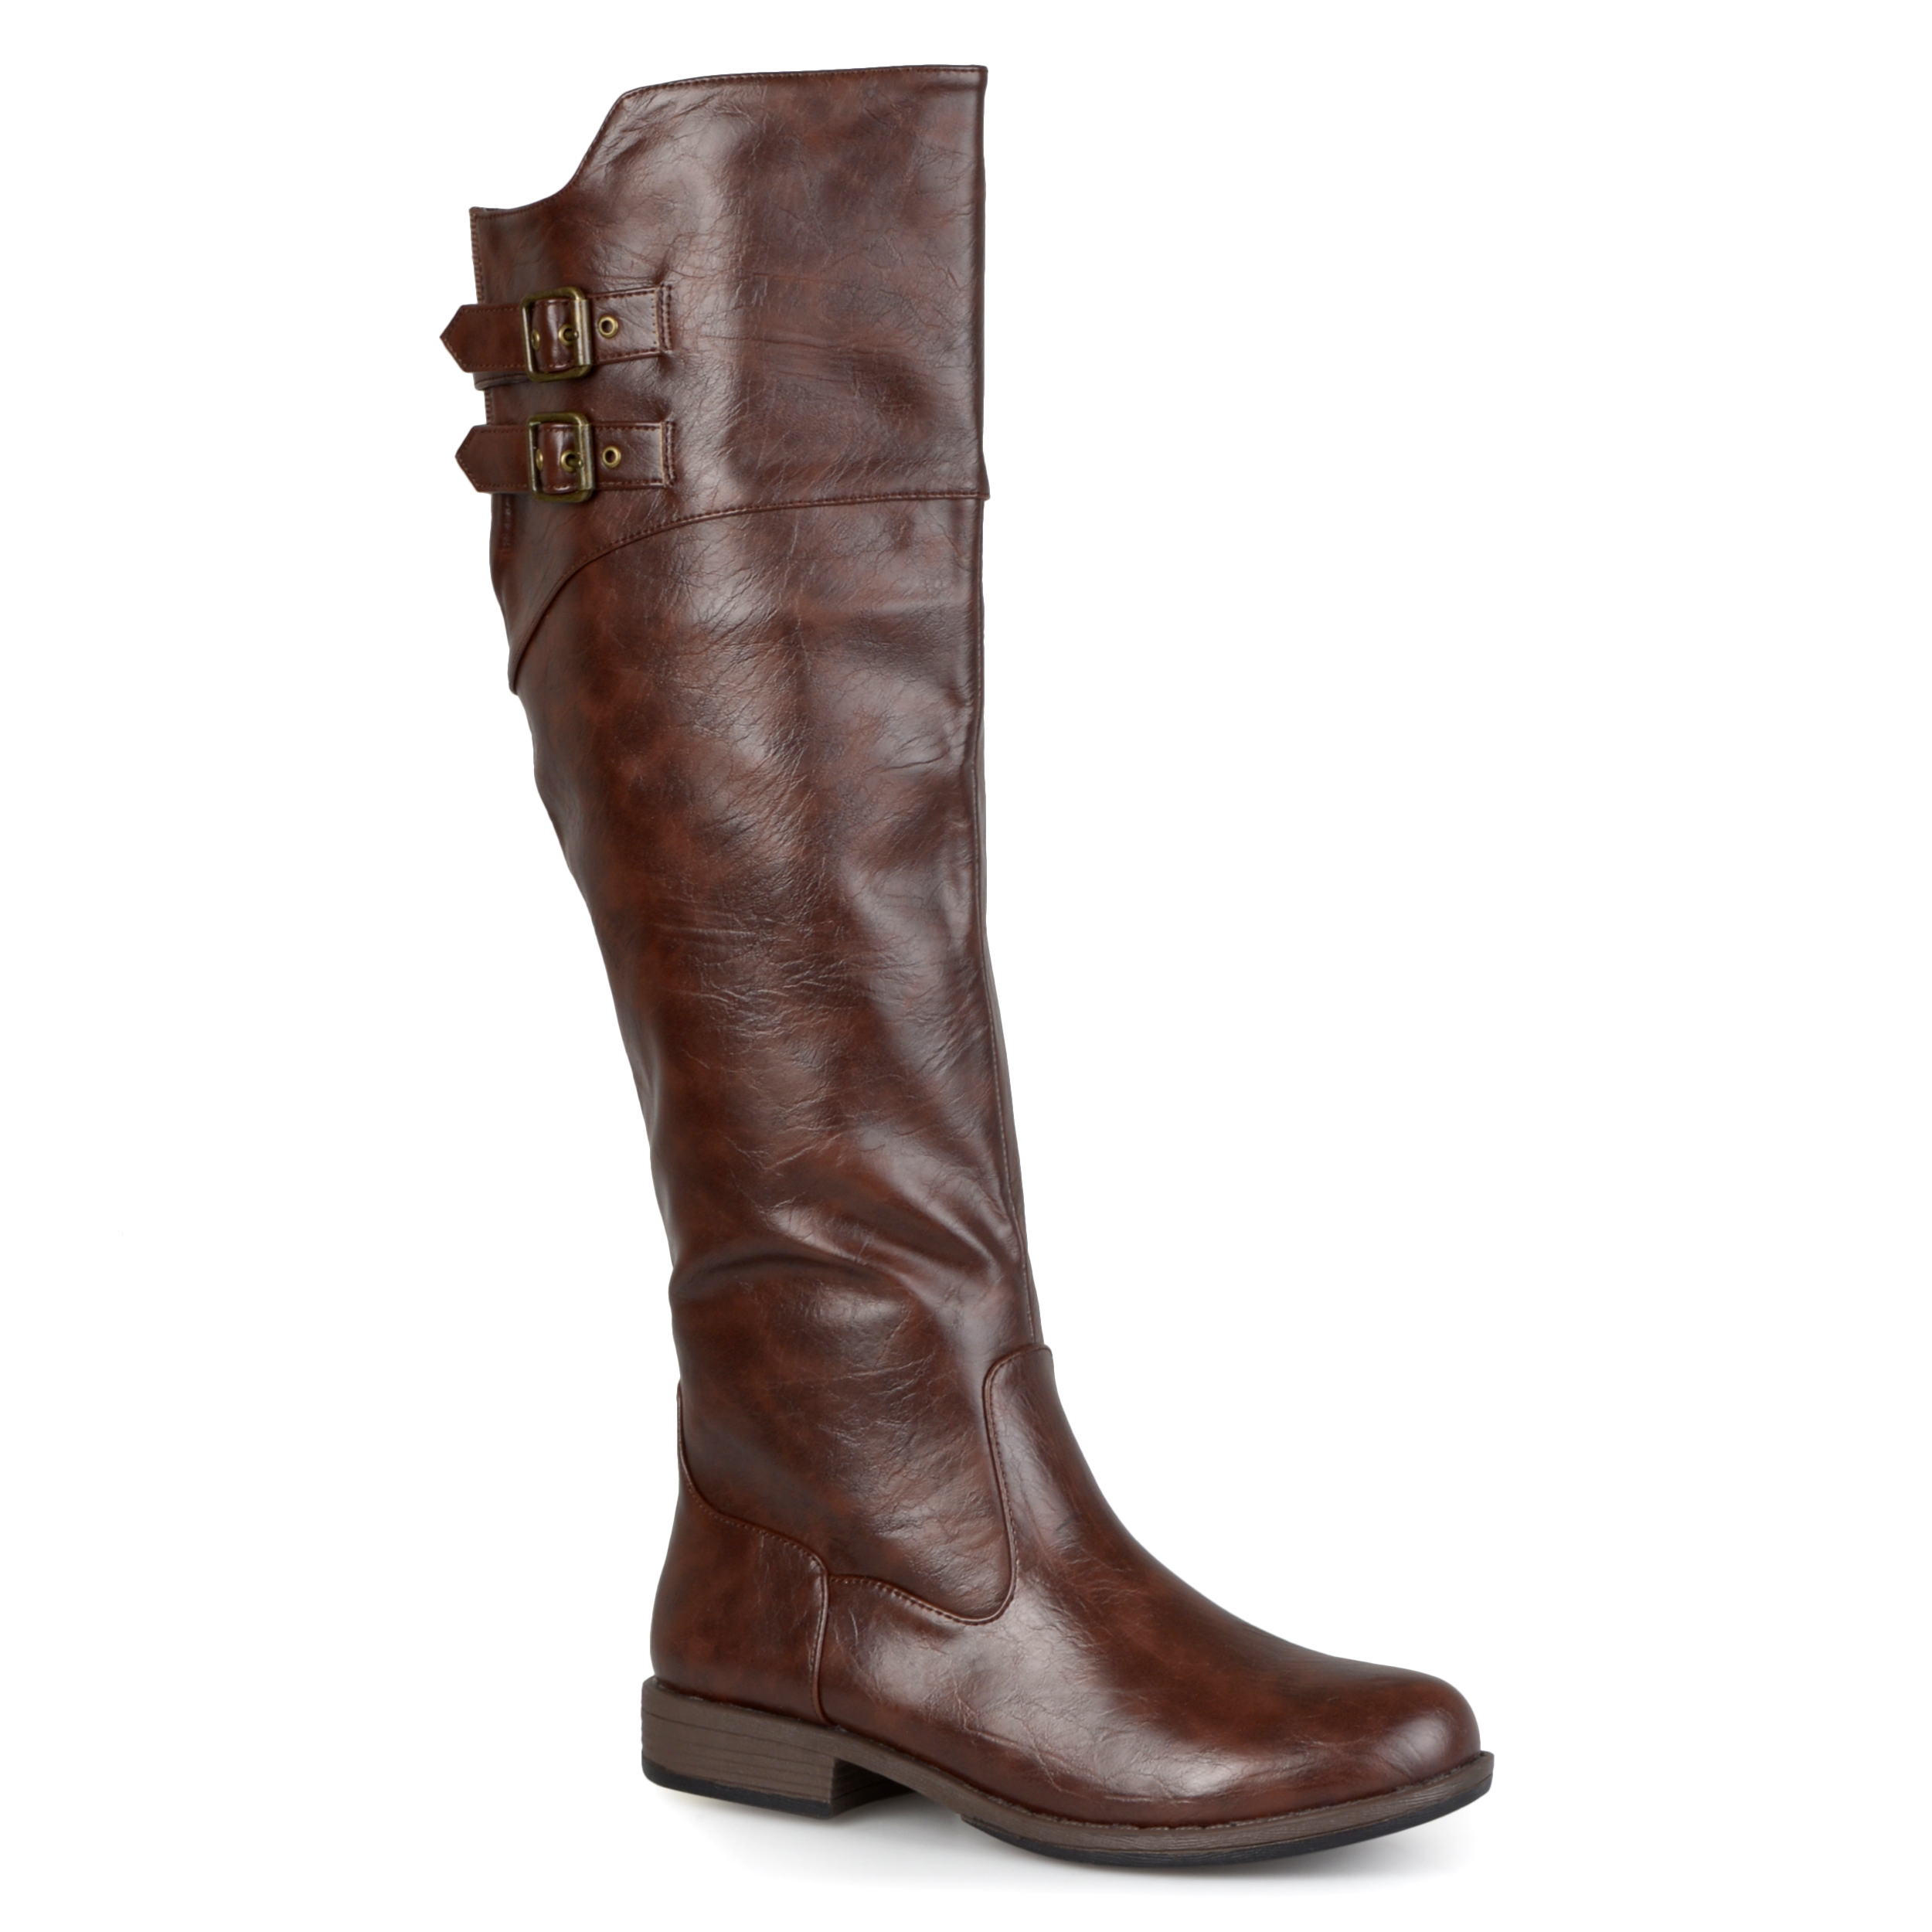 Journee Collection Womens Round Toe Buckle Detail Boots at Sears.com